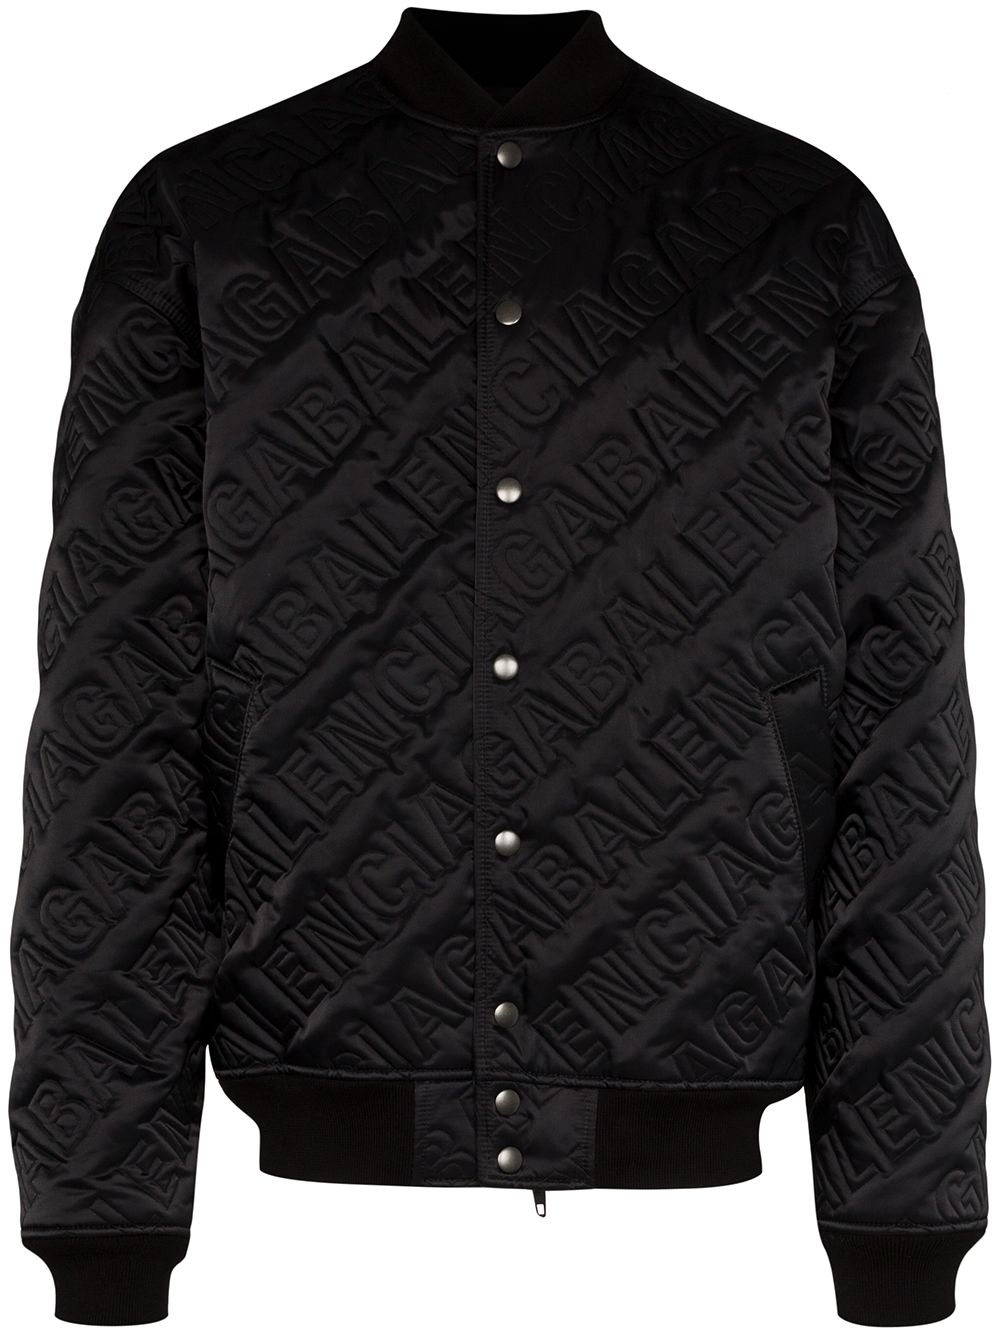 BALENCIAGA quilted embroidered logo bomber jacket black - Maison De Fashion